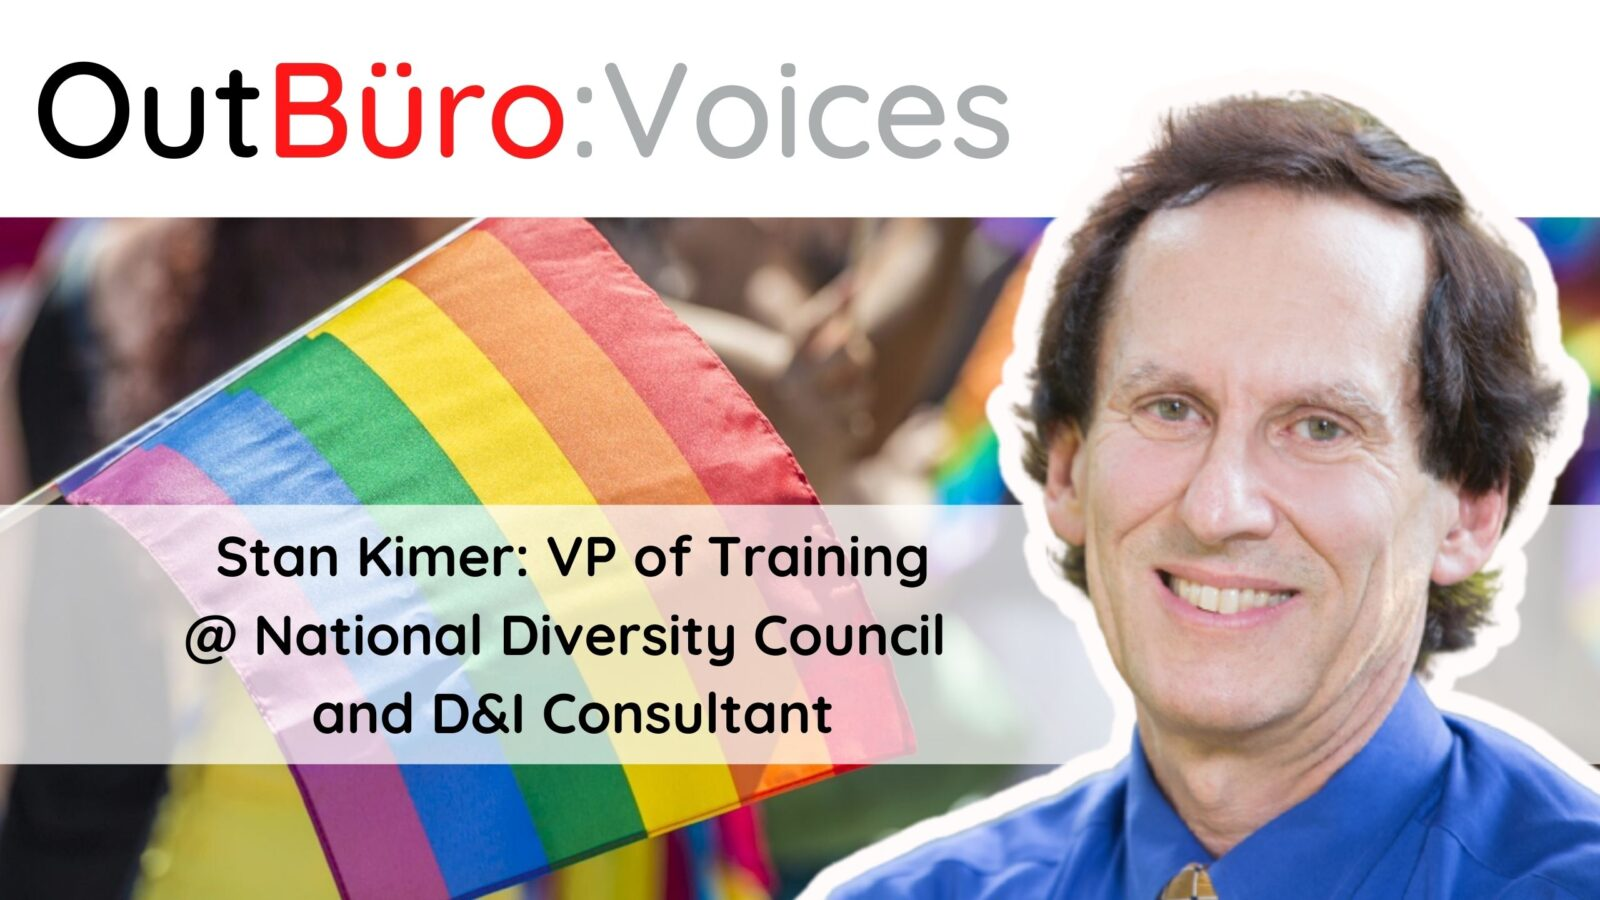 Stan Kimer_ VP of Training for National Diversity Council & Consultant lgbt out gay entrepreneur lgbtq business owners lesbian queer community OutBuro